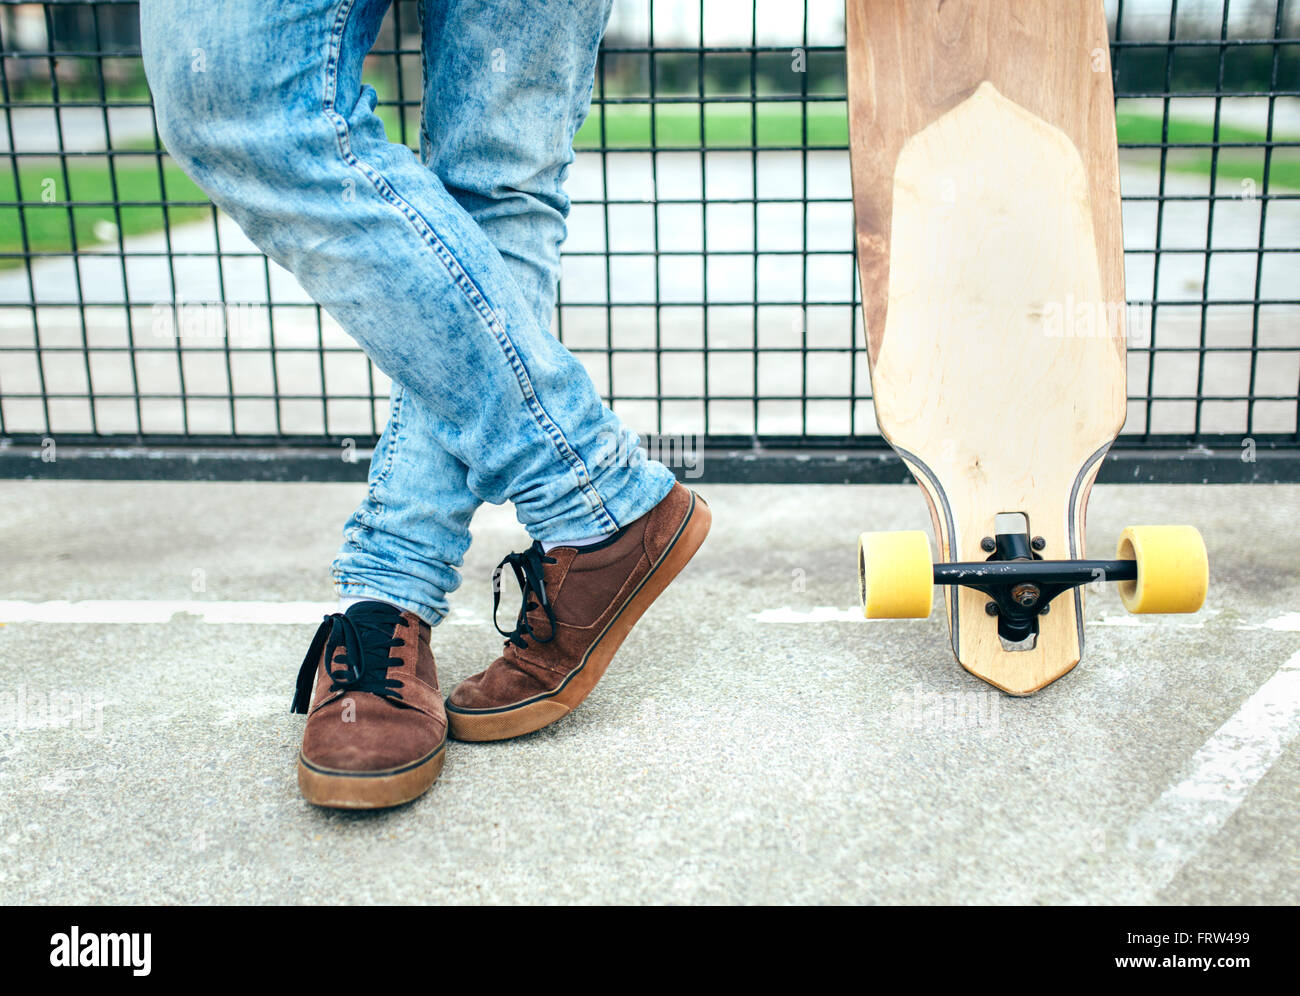 Legs of young man besides skateboard - Stock Image